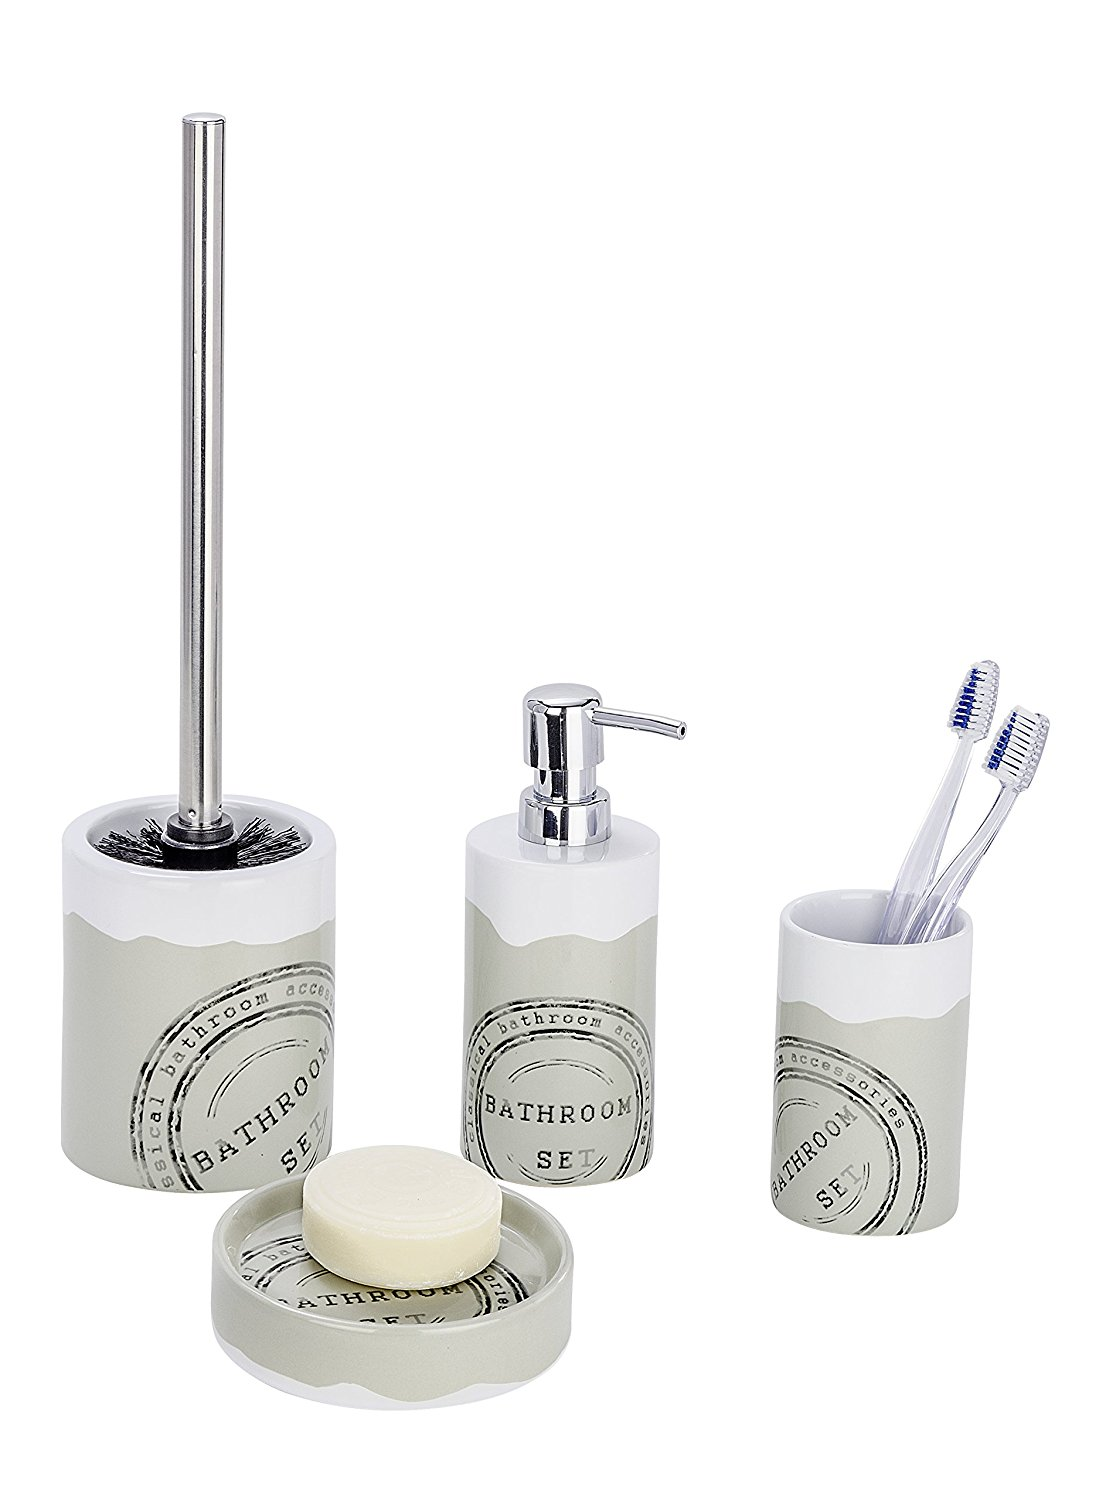 Badezimmer Seifenspender Set 4tlg Wenko Bad Set Bathroom Aus Keramik Wc Garnitur Seifenspender